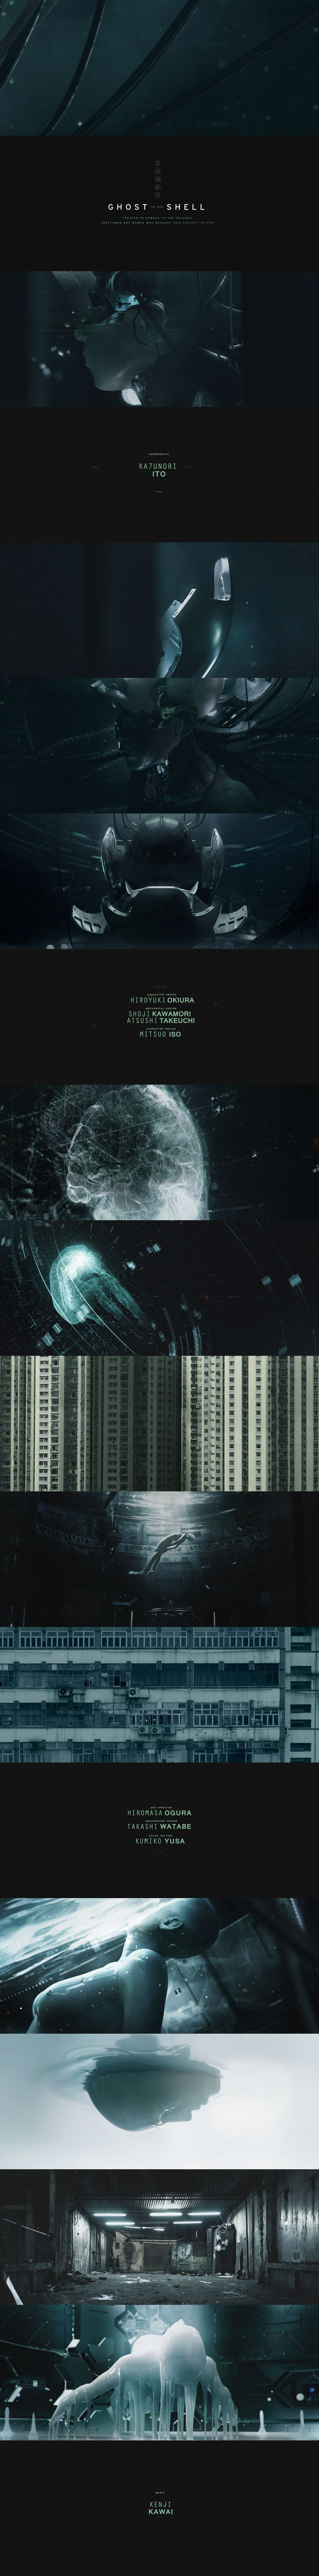 PROJECT 2501 : HOMAGE TO GHOST IN THE SHELL Part 1